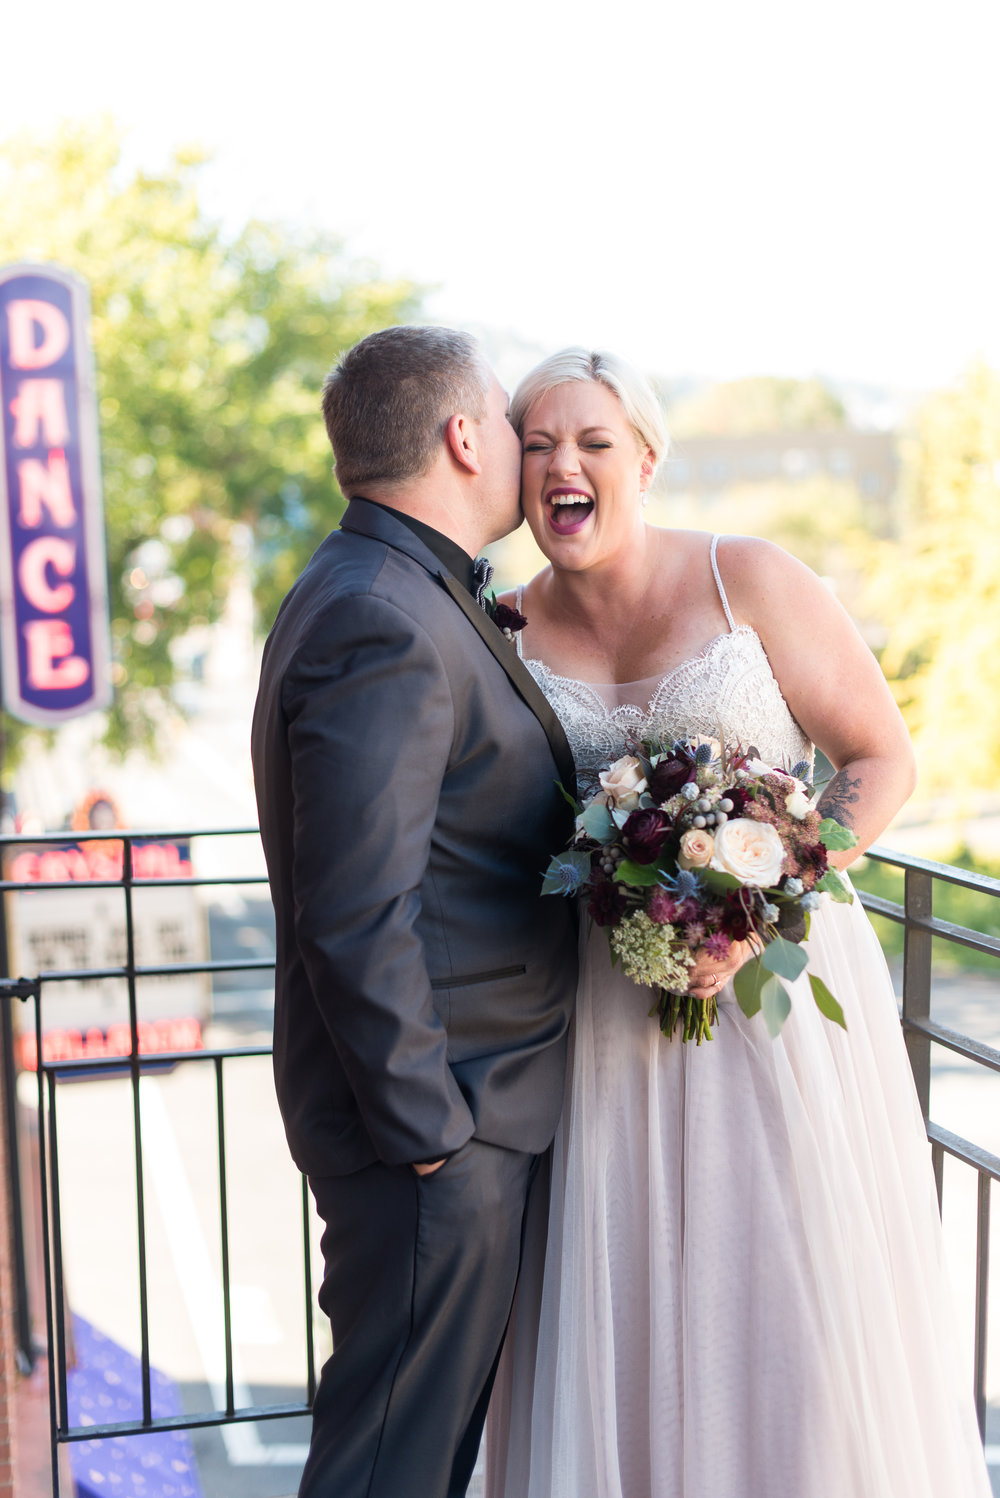 Bridalbliss.com | Portland Wedding | Oregon Event Planning and Design |  Powers Photography